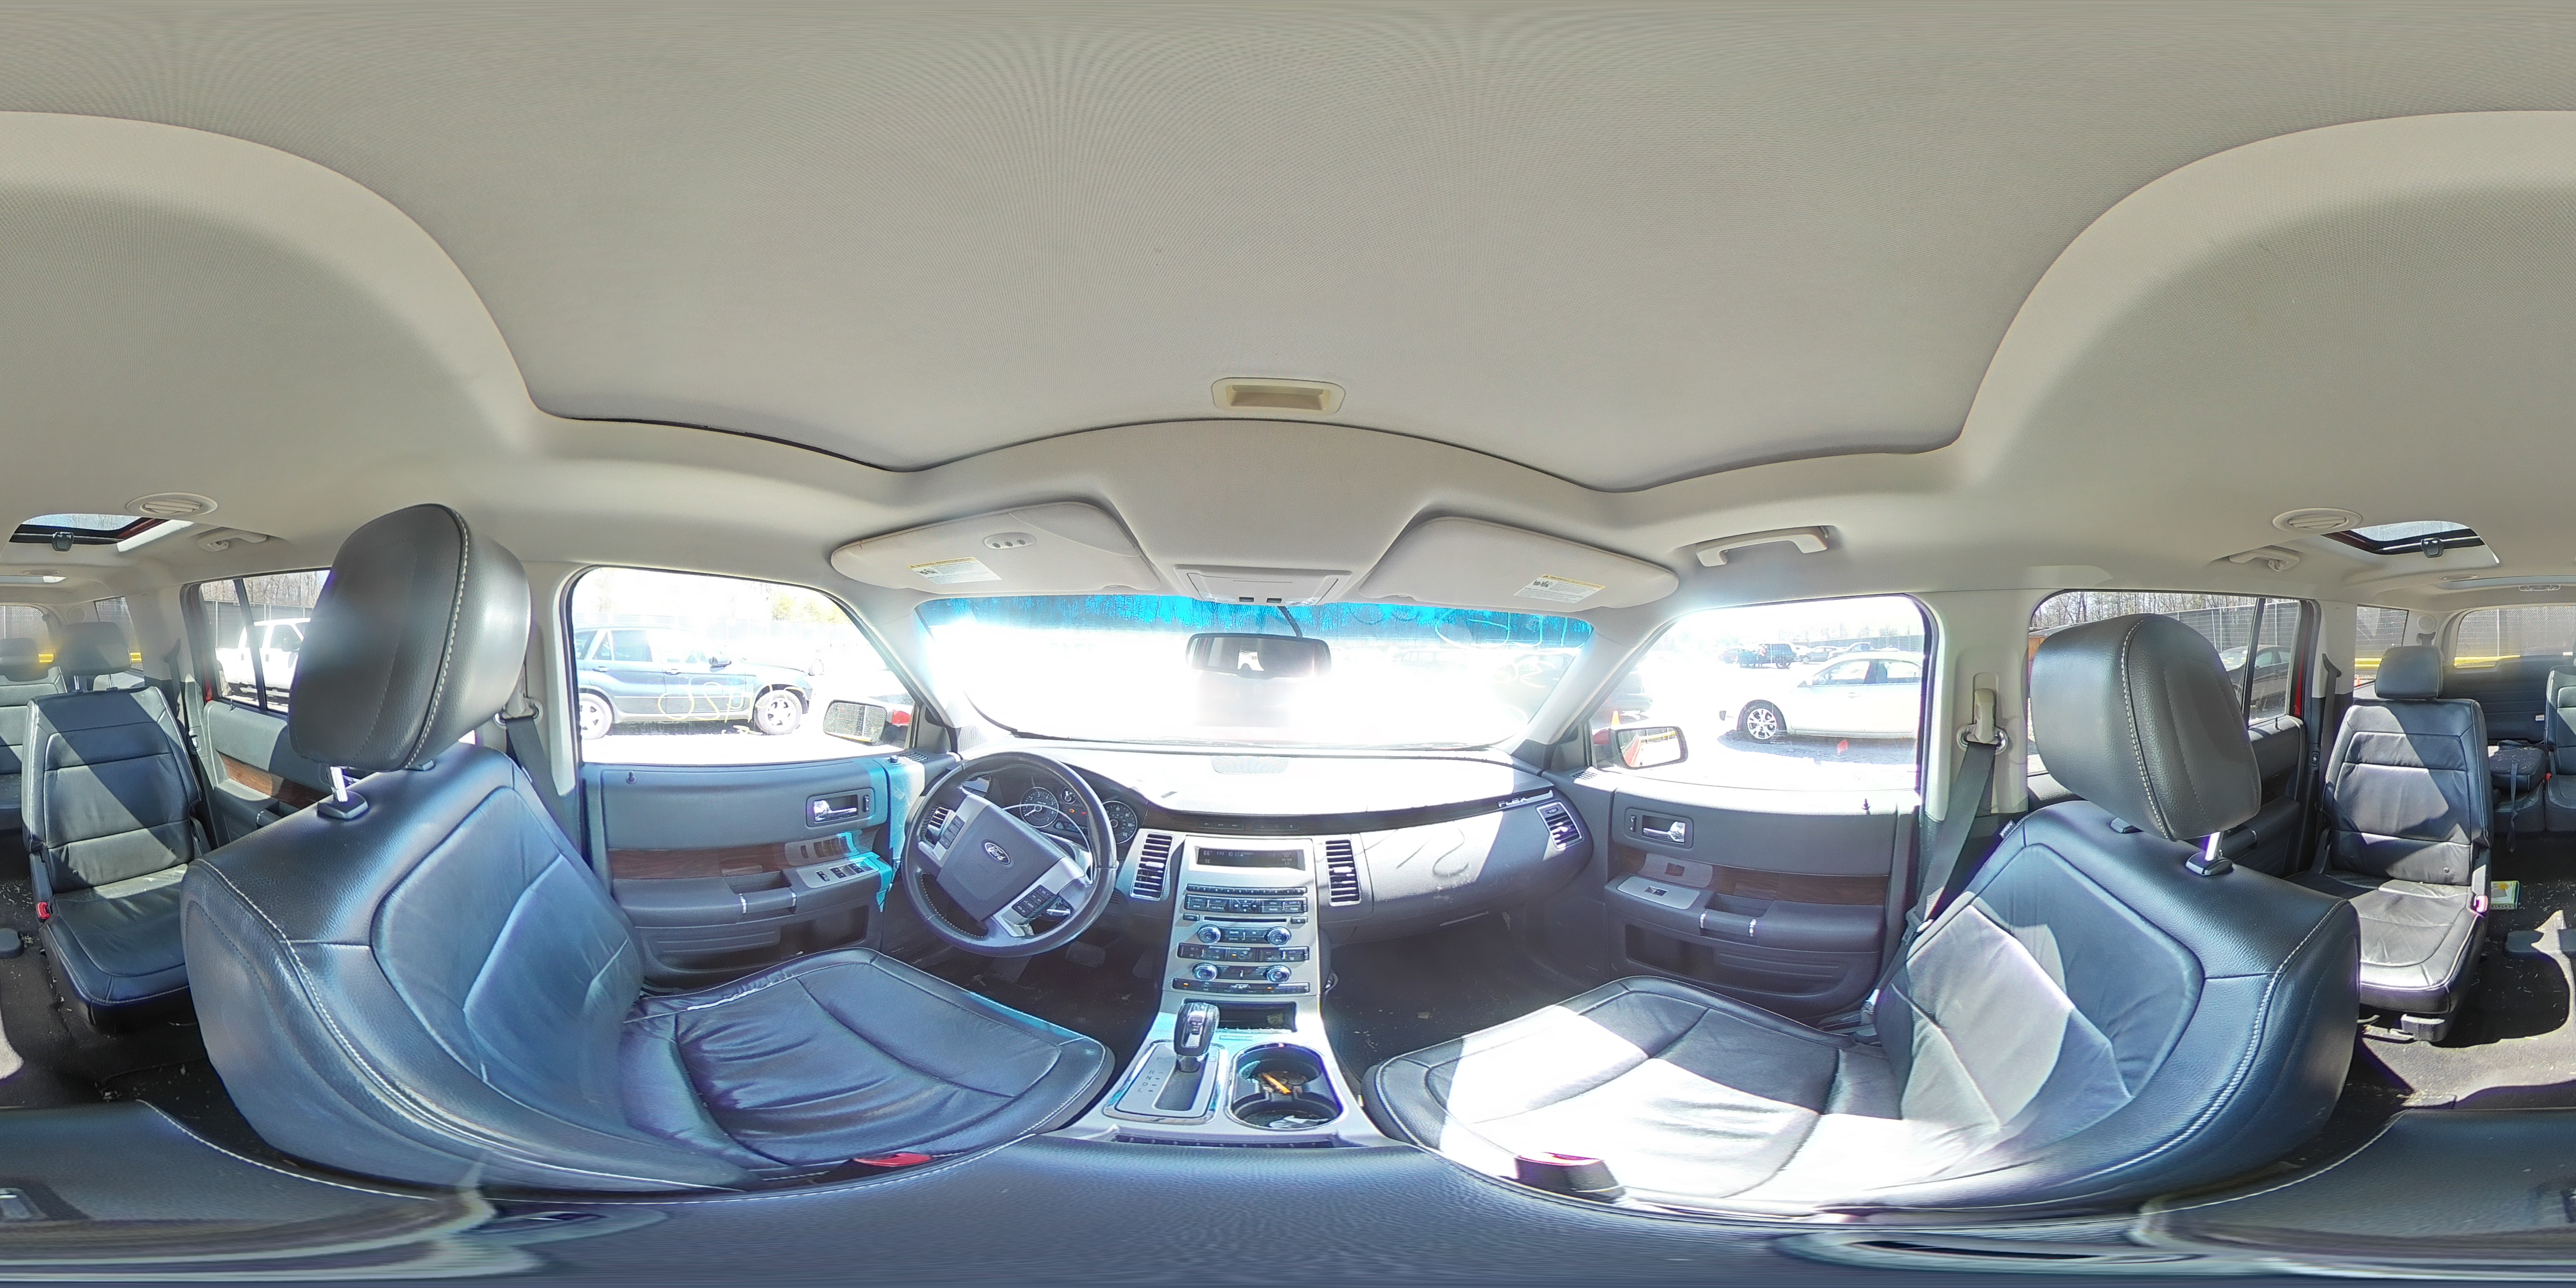 2010 FORD FLEX - Other View